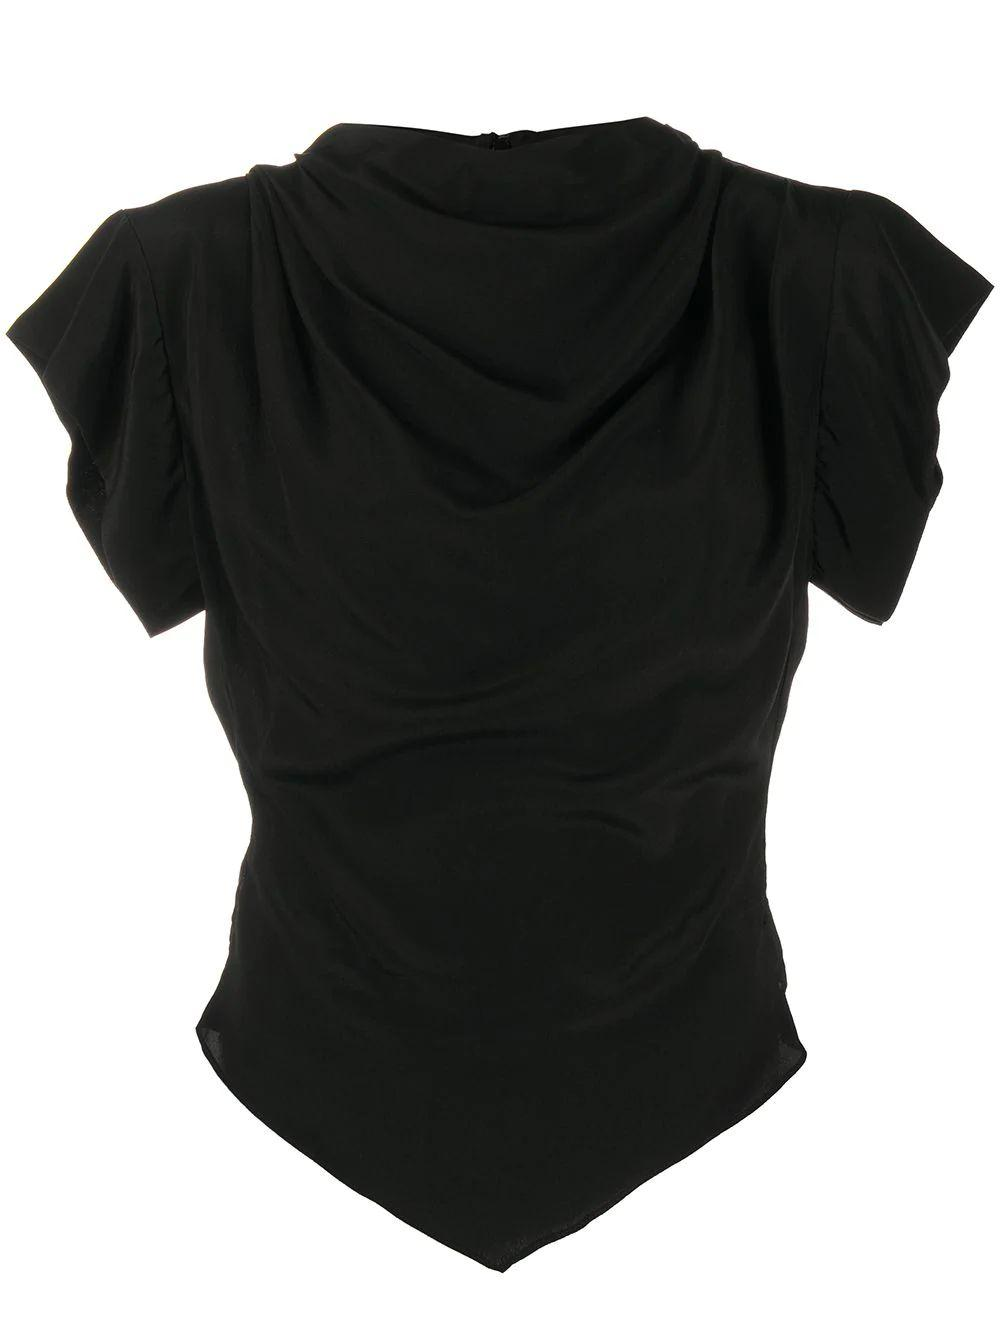 Cap Sleeve Solid Mock Neck Top Item # BRINLYA